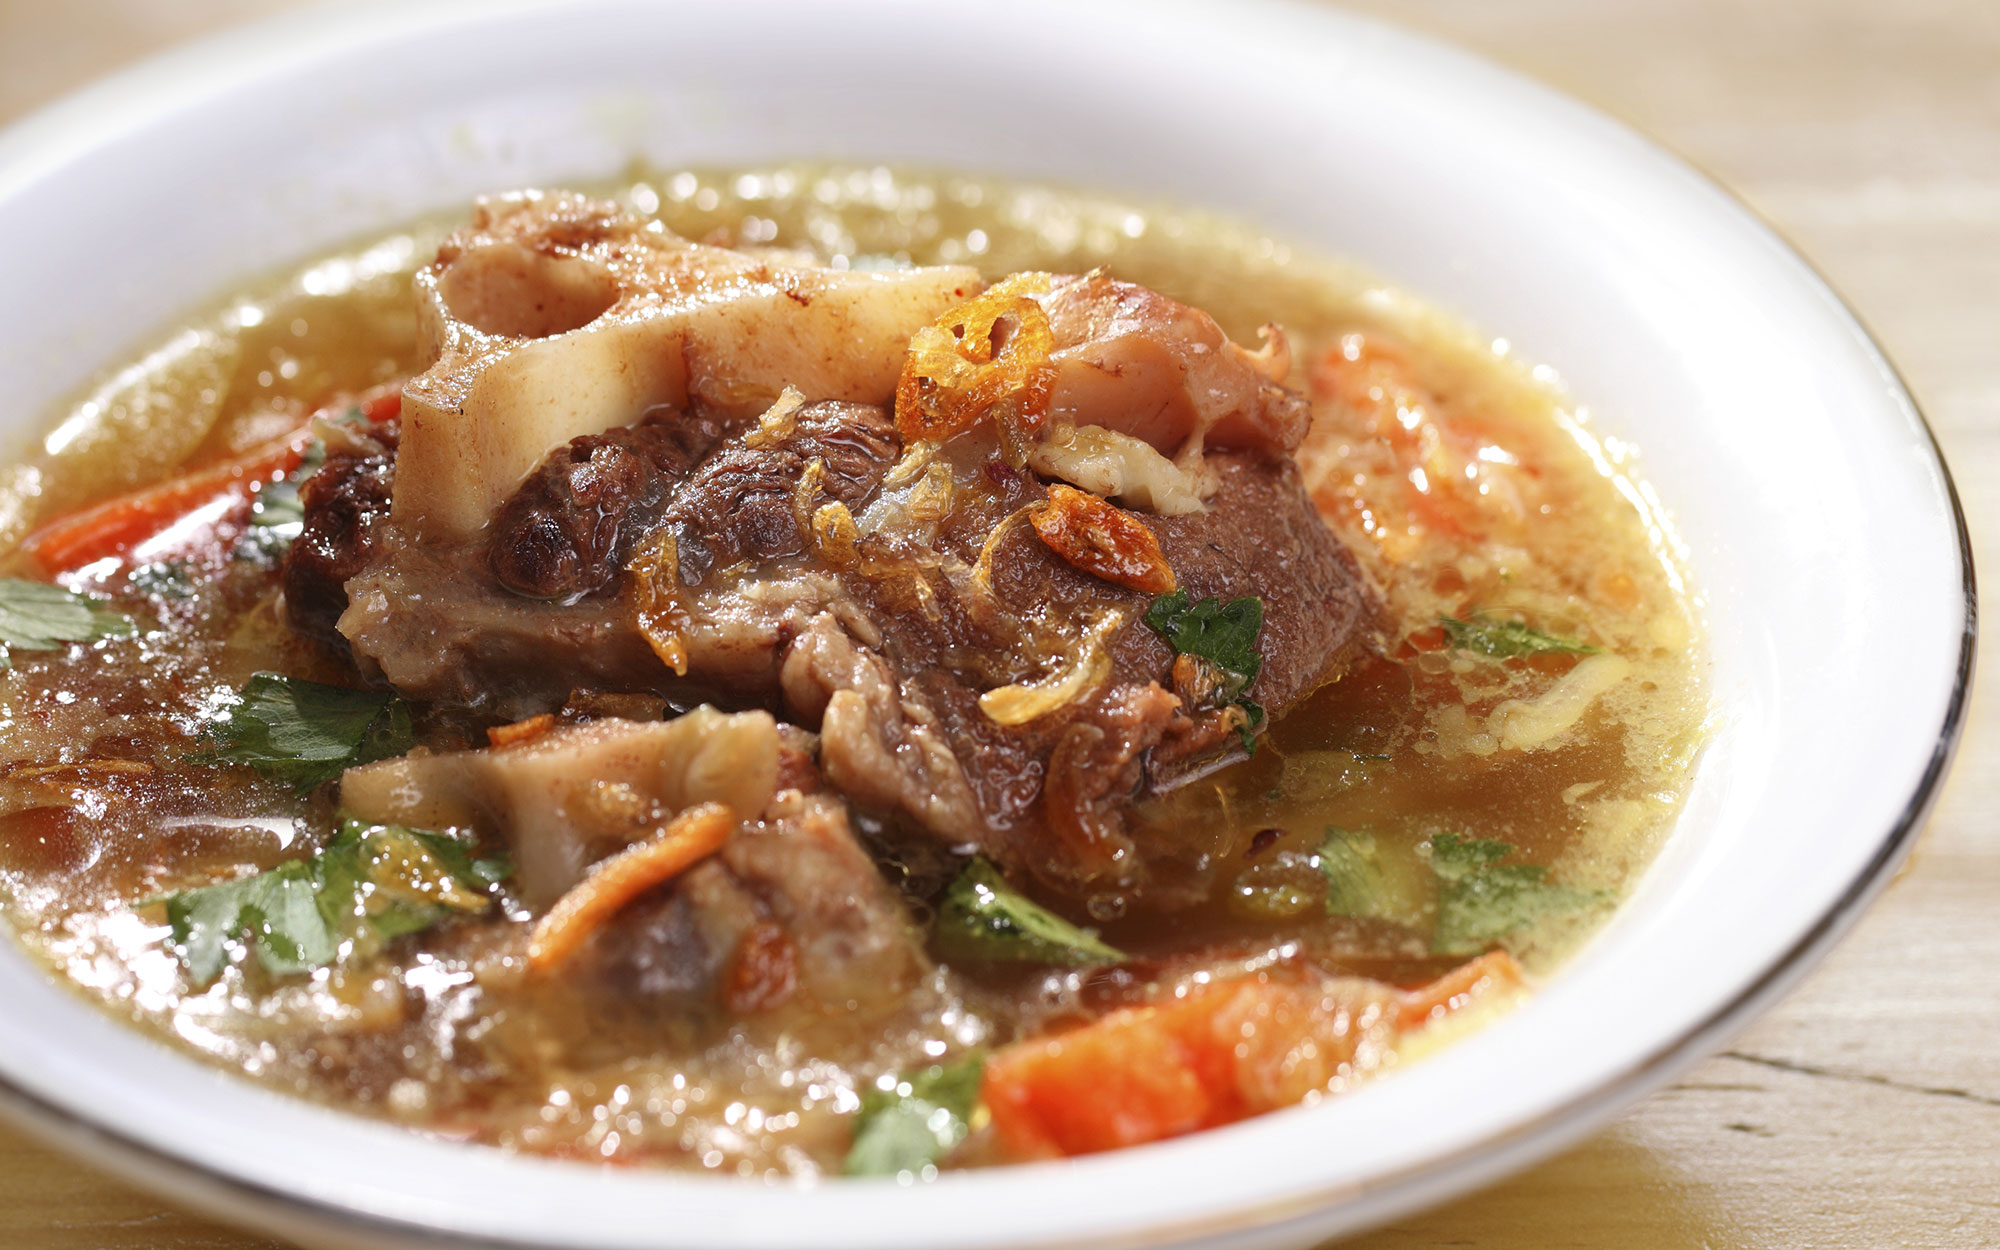 World's Strangest Cold Remedies: Oxtail Soup